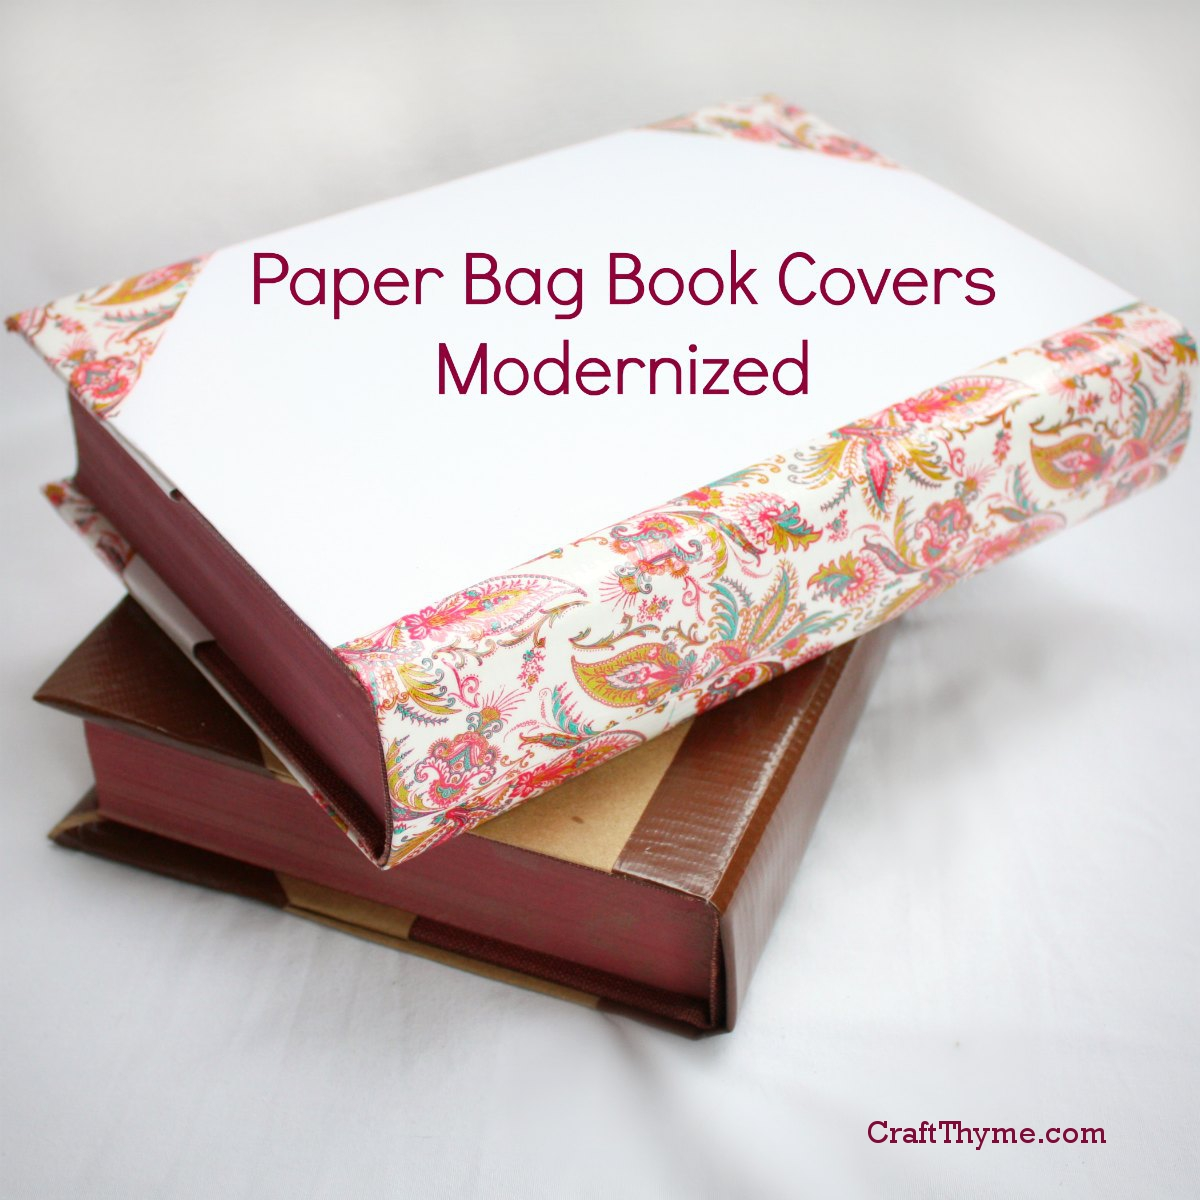 Cover Book With Brown Paper Bag : Old fashioned paper bag book covers craft thyme